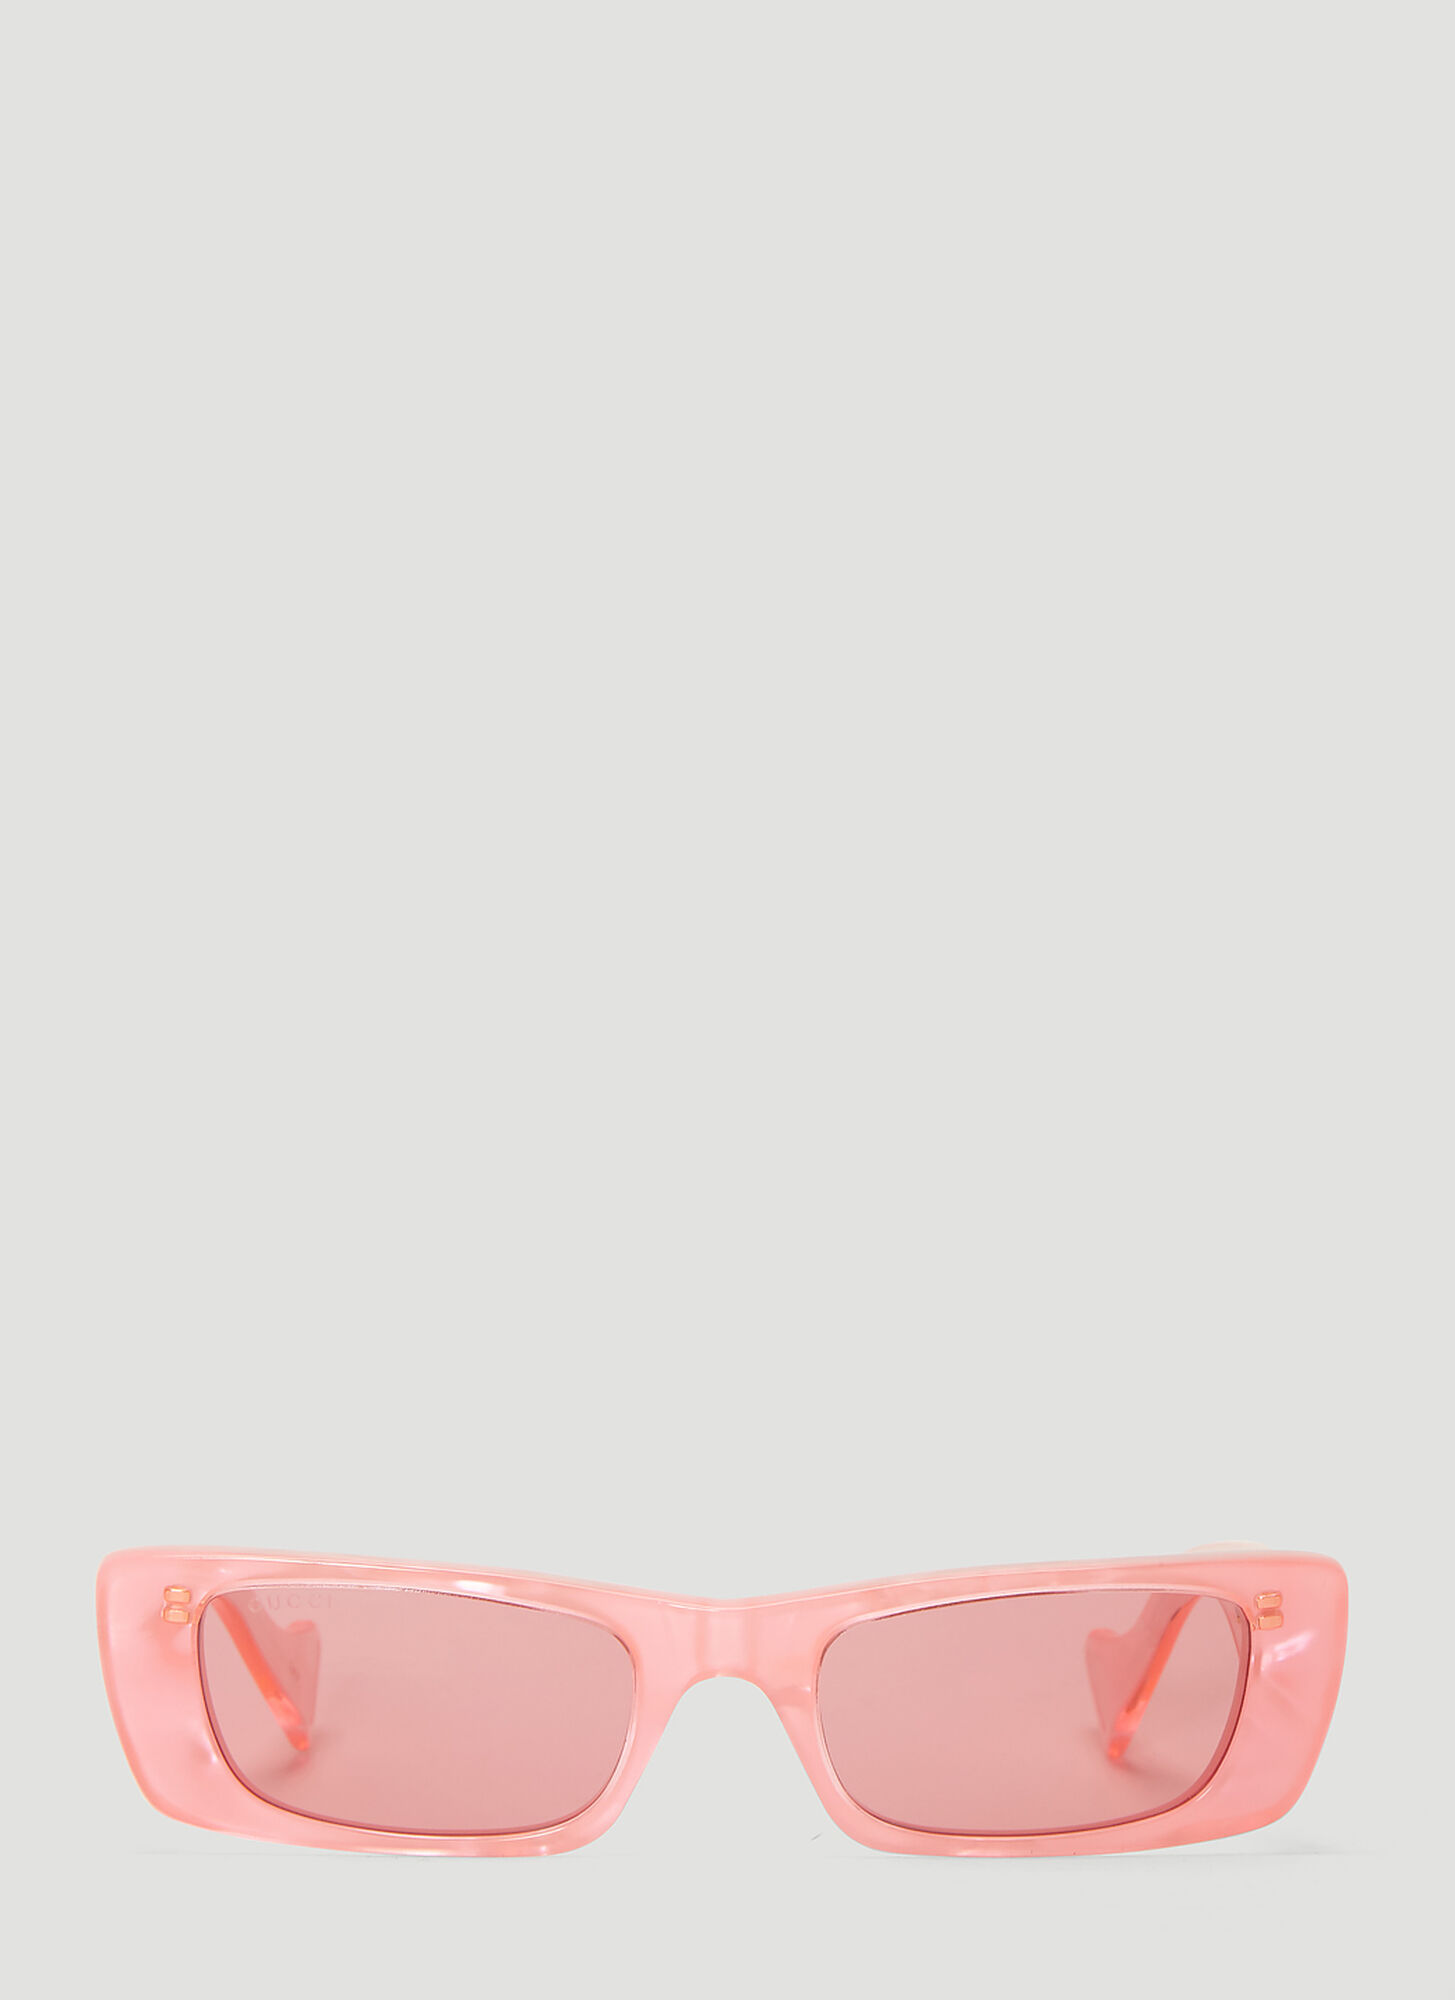 Gucci Rectangular Acetate Sunglasses in Pink